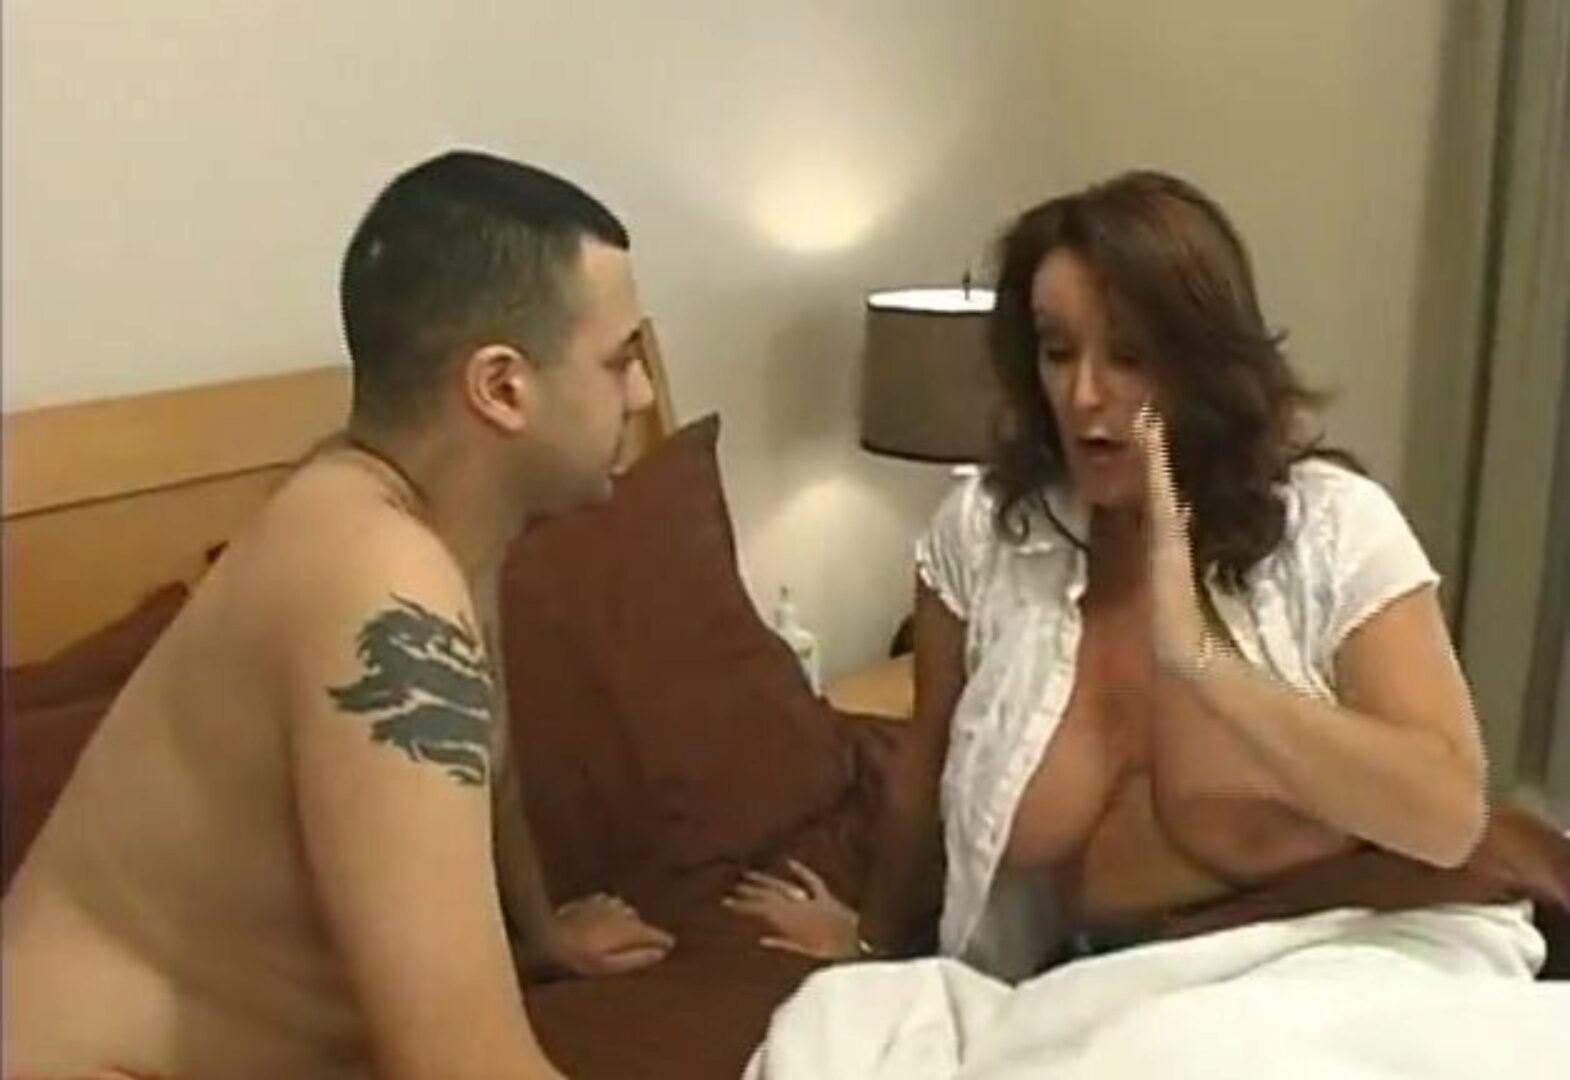 Mom Says Don't Cum Inside Me, But Son Forces & Creampies Mom Part two Mature mom and youthful son have rigid lovemaking Mom sob and and demands sonny not spunk inside her. But her lascivious son doesn't listen to that. He forces her mama and lastly pack her bawdy cleft with his cum